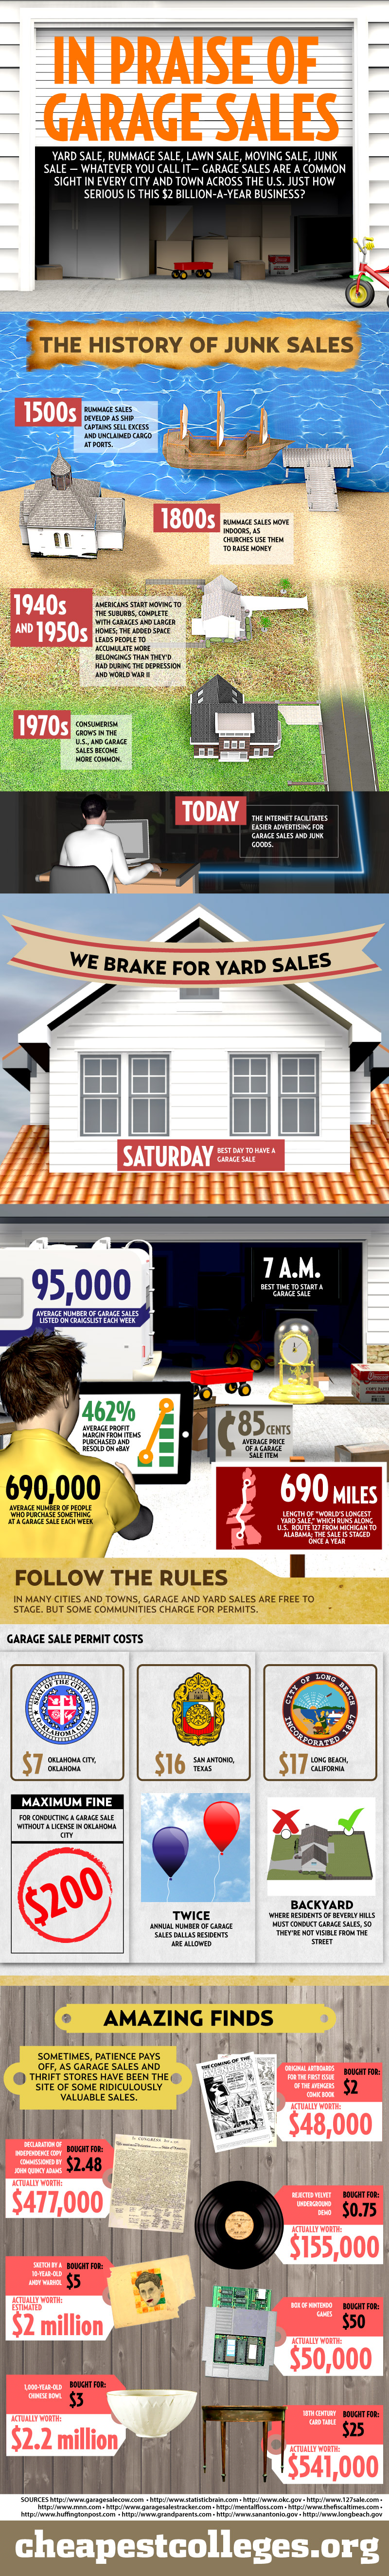 Infographic : In Praise of Garage Sales